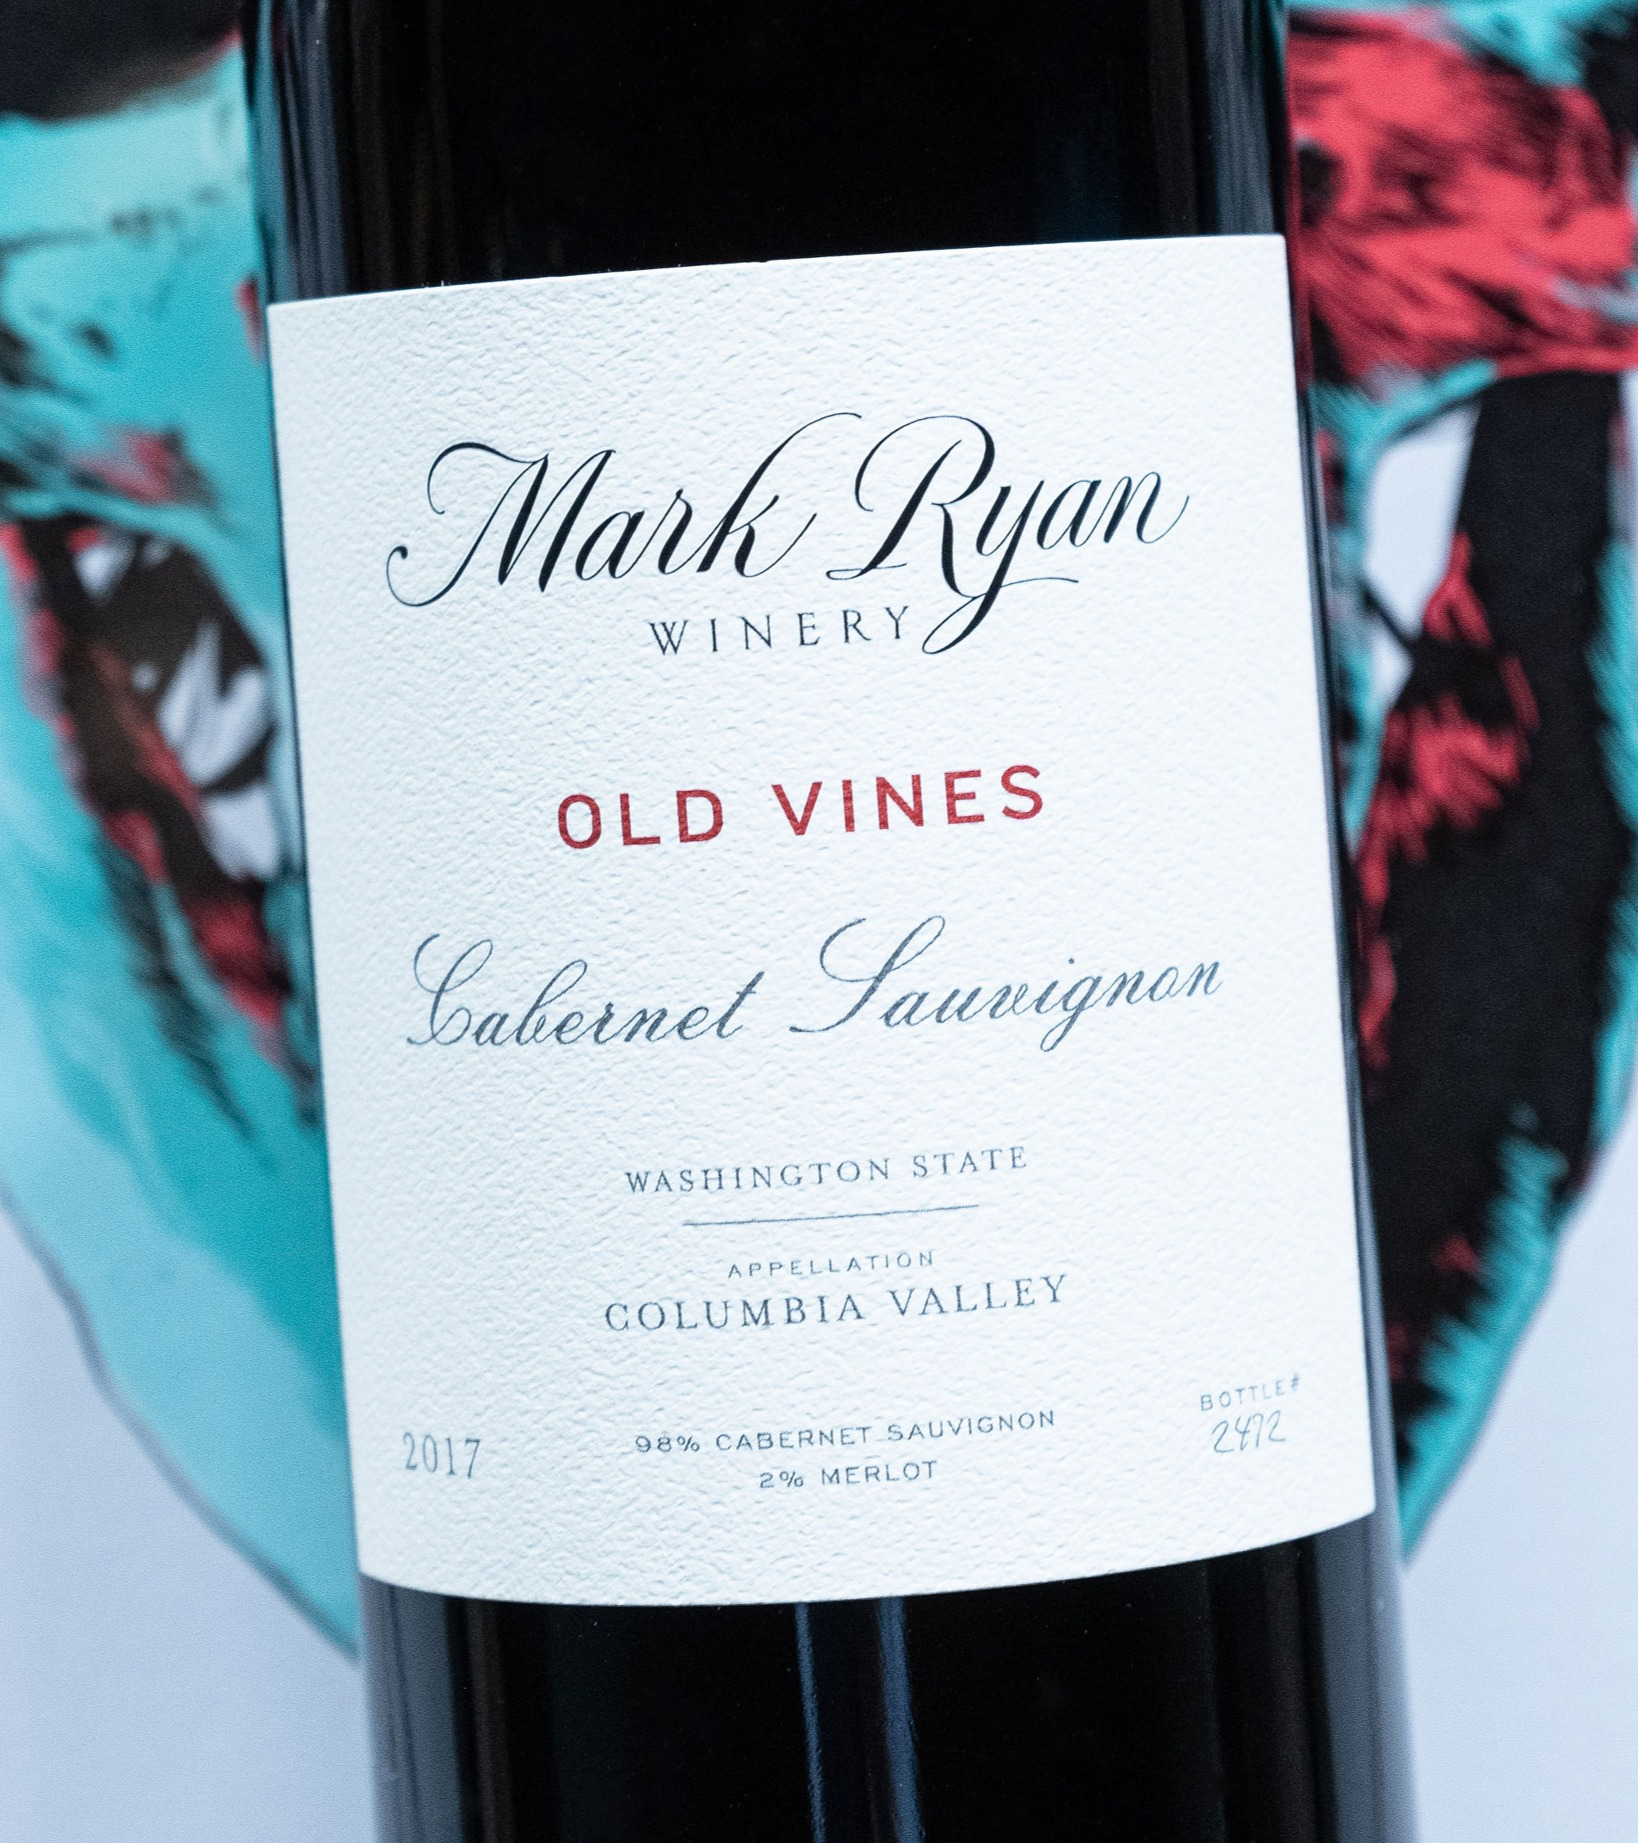 Bottle of Old Vines